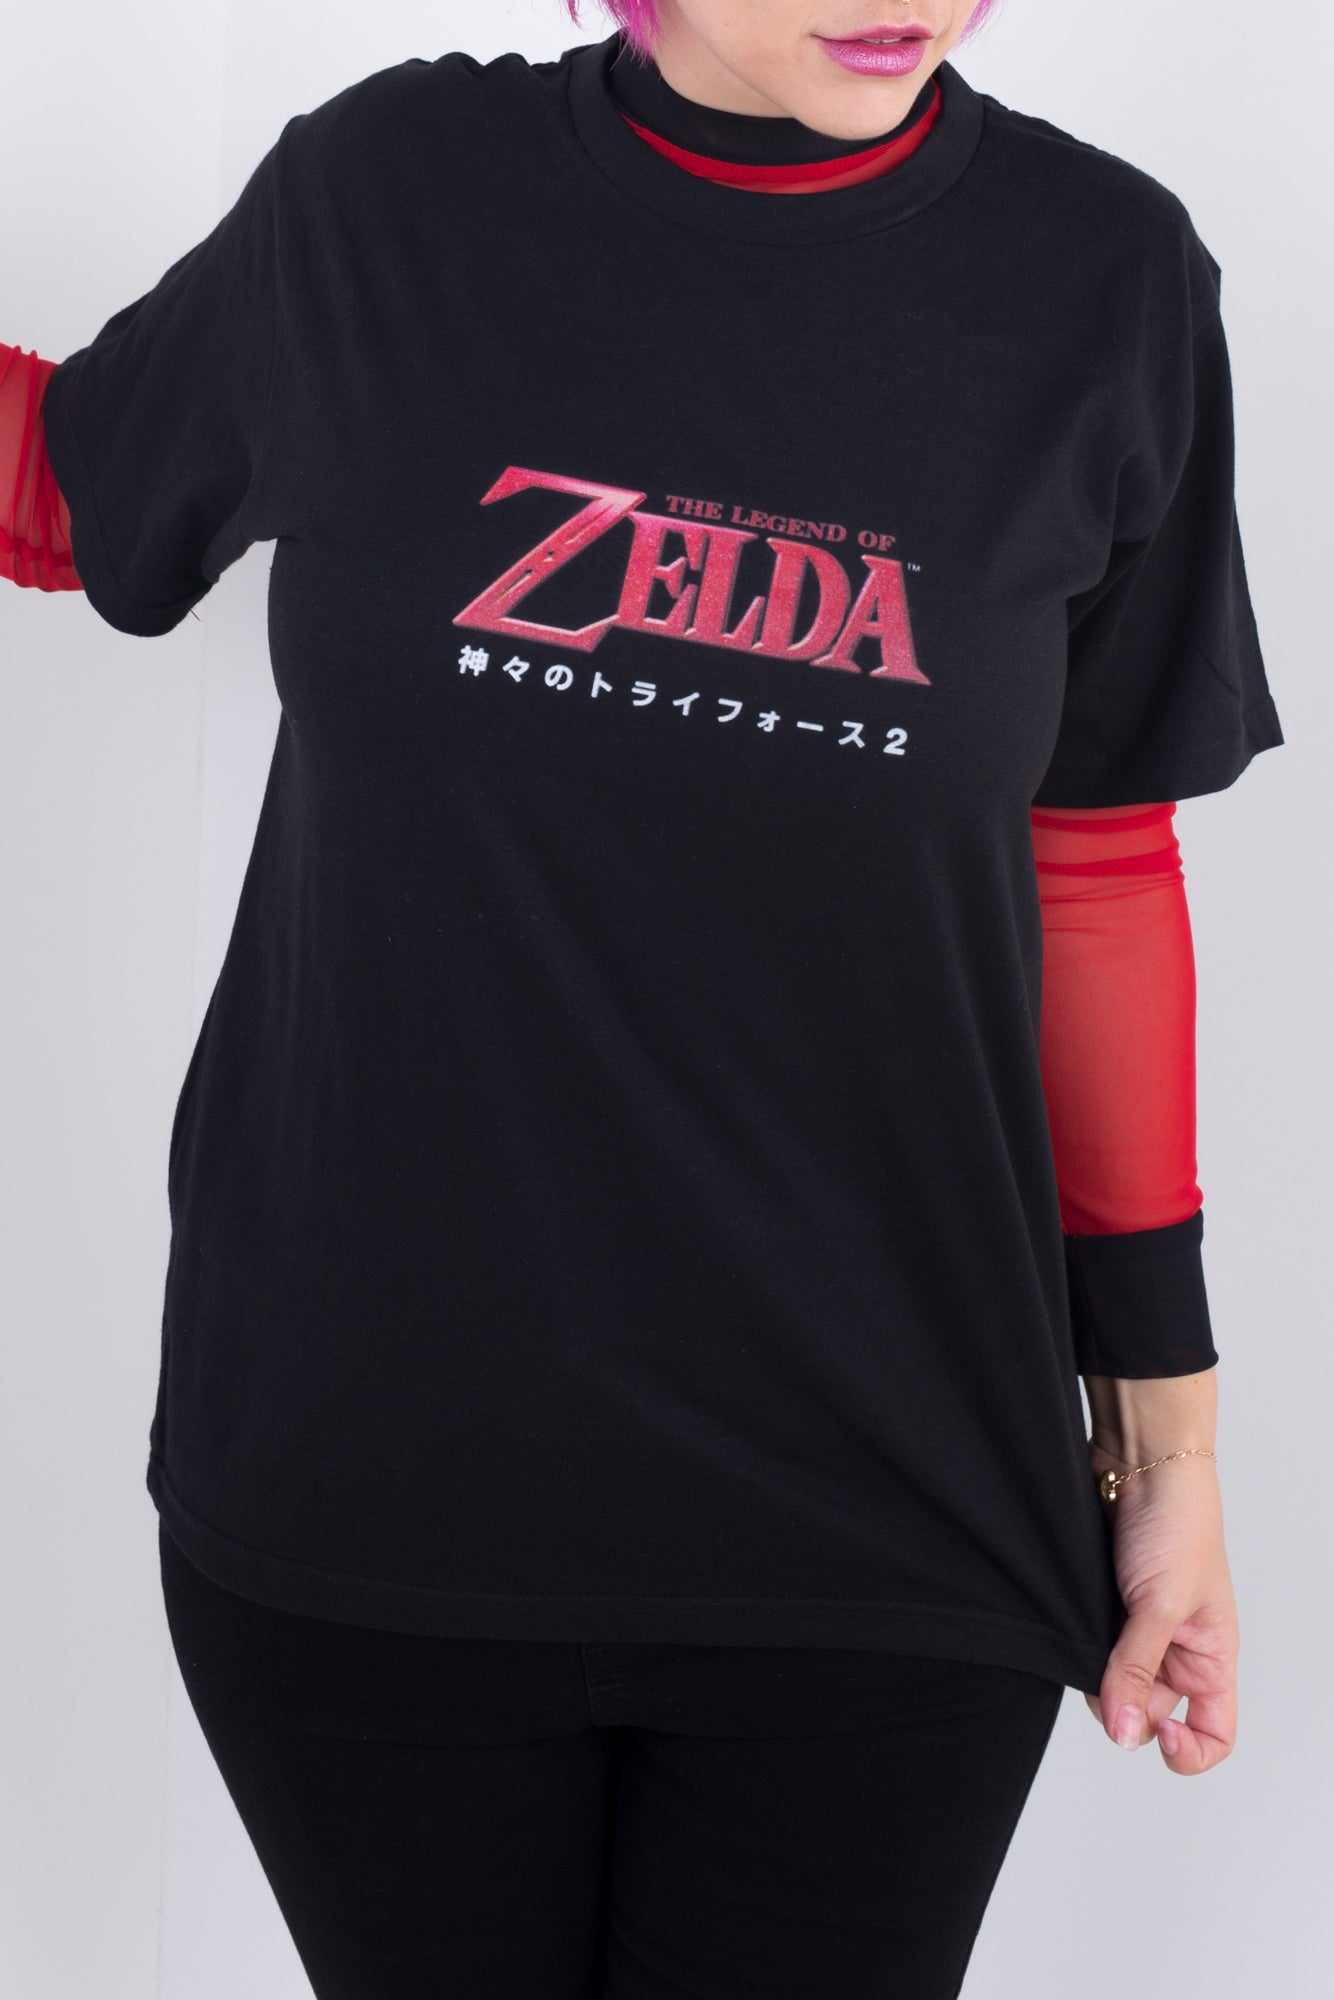 The Legend Of Zelda Tee